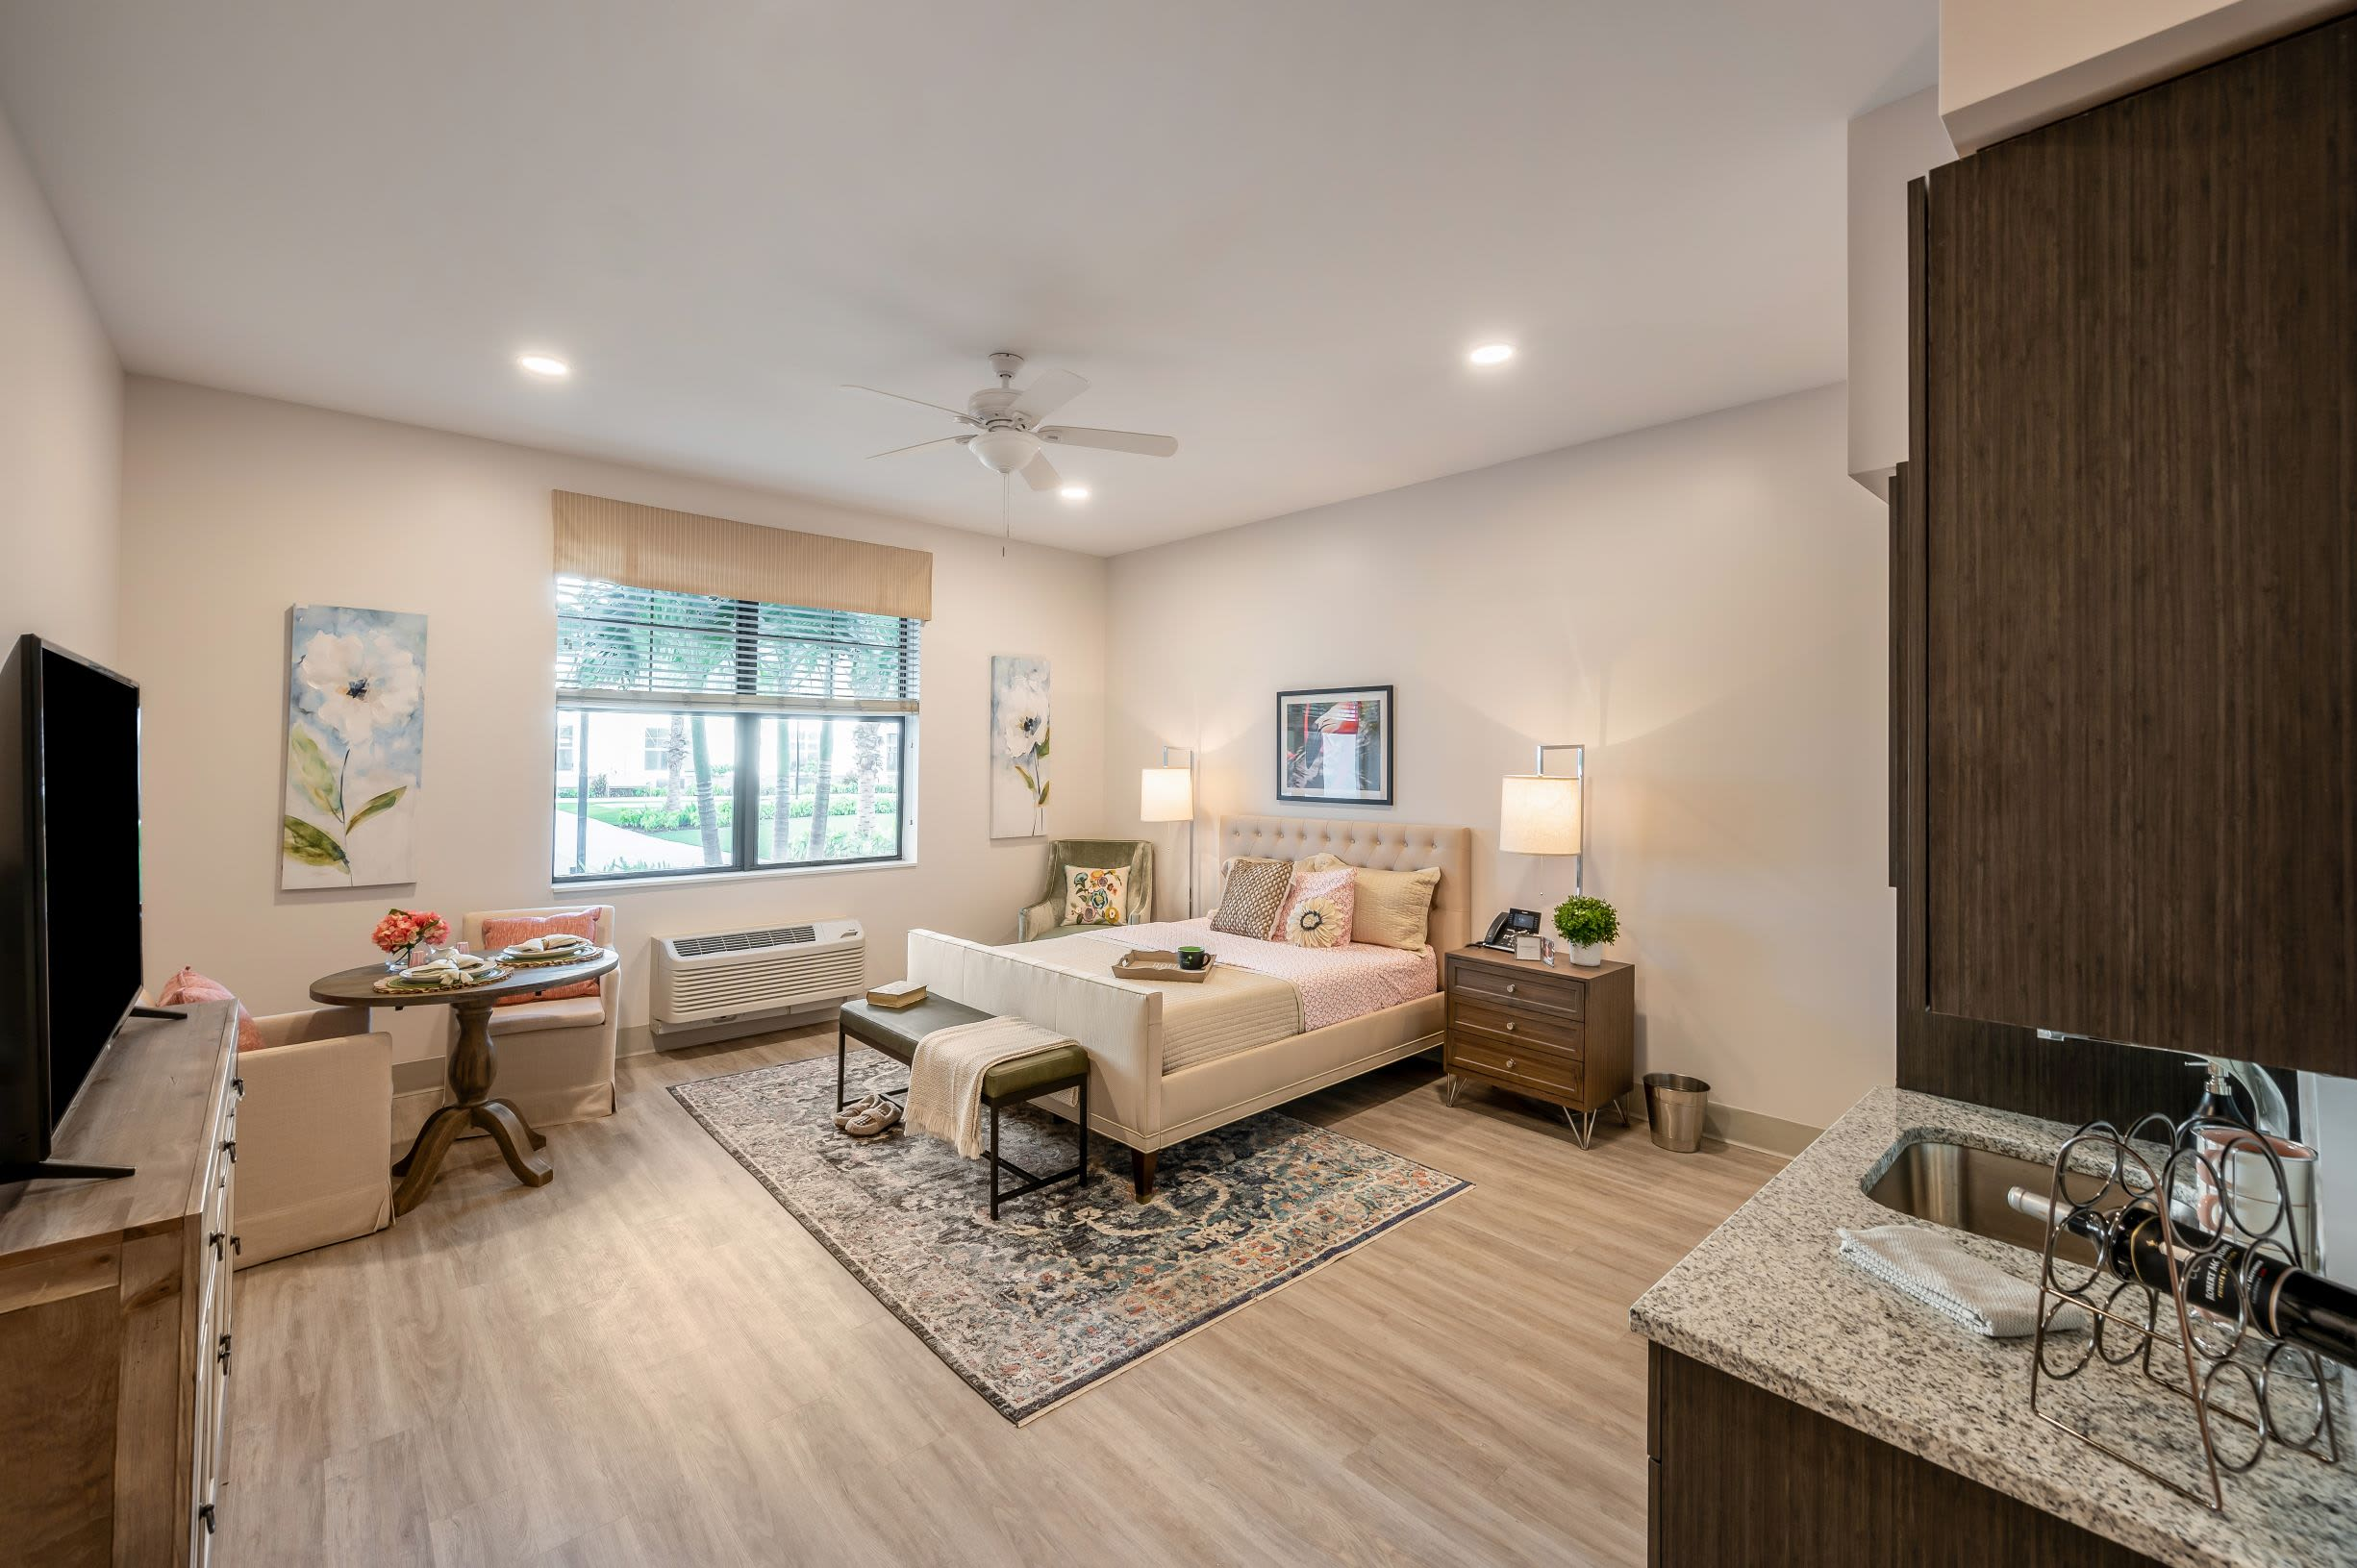 Model Room 3 at Alura By Inspired Living in Rockledge, Florida